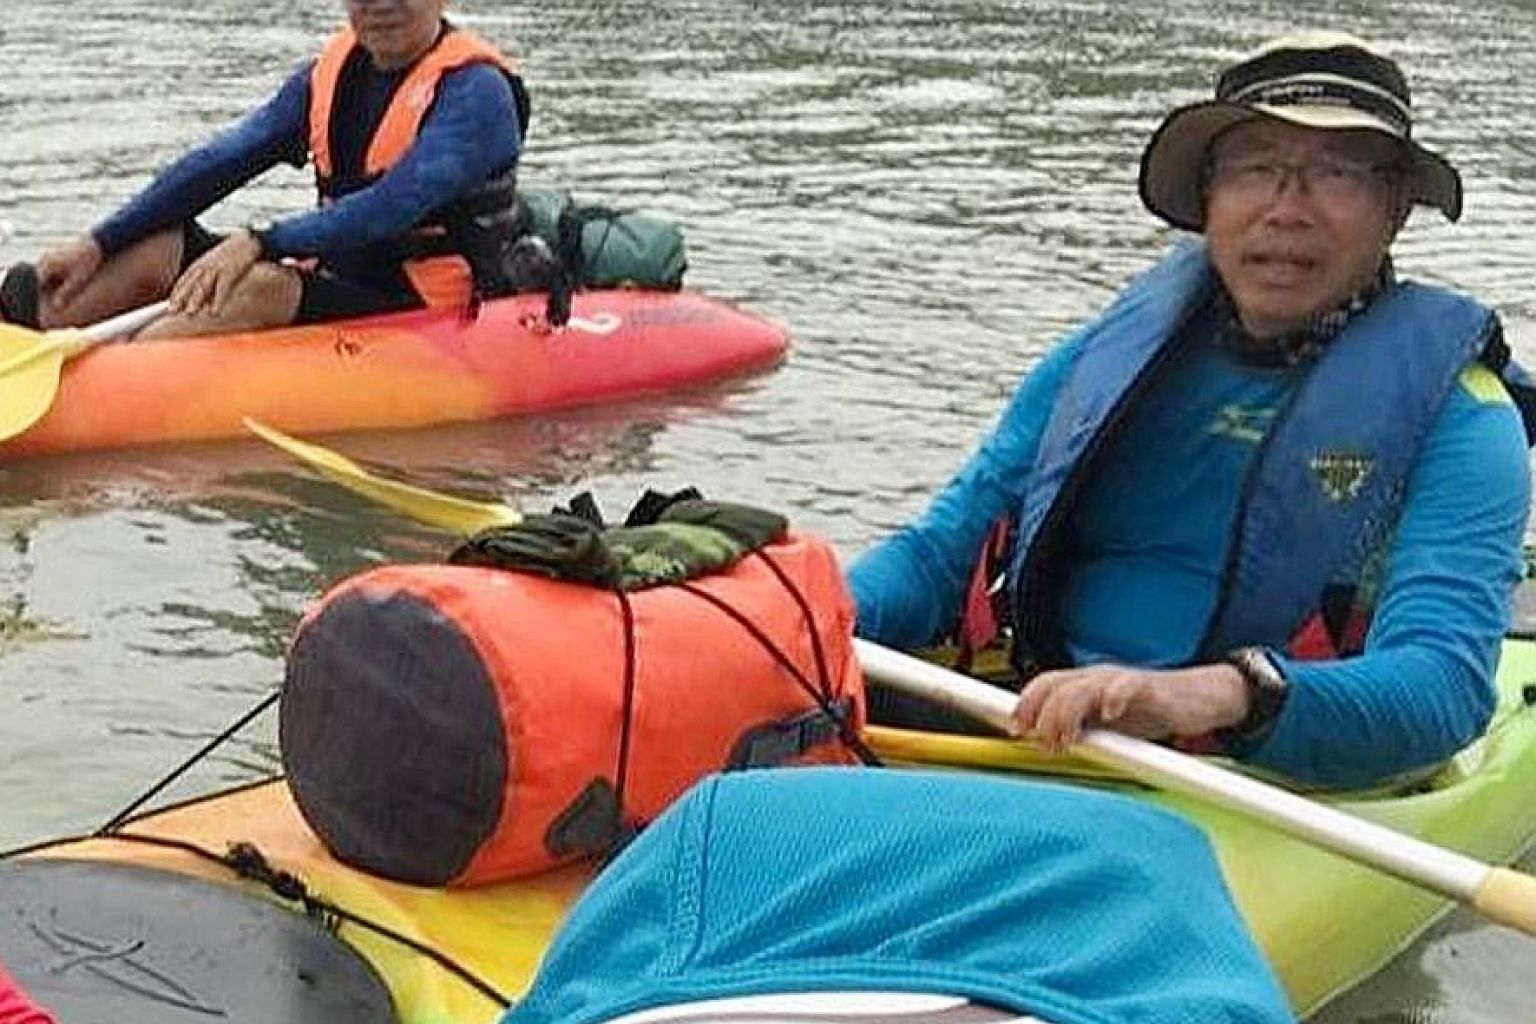 Missing kayaker Tan Eng Soon, 62, in a photo taken during the Mersing trip. With him is Madam Puah Geok Tin, 57, whose body was found near Kemaman. The two got separated from a group in bad weather.